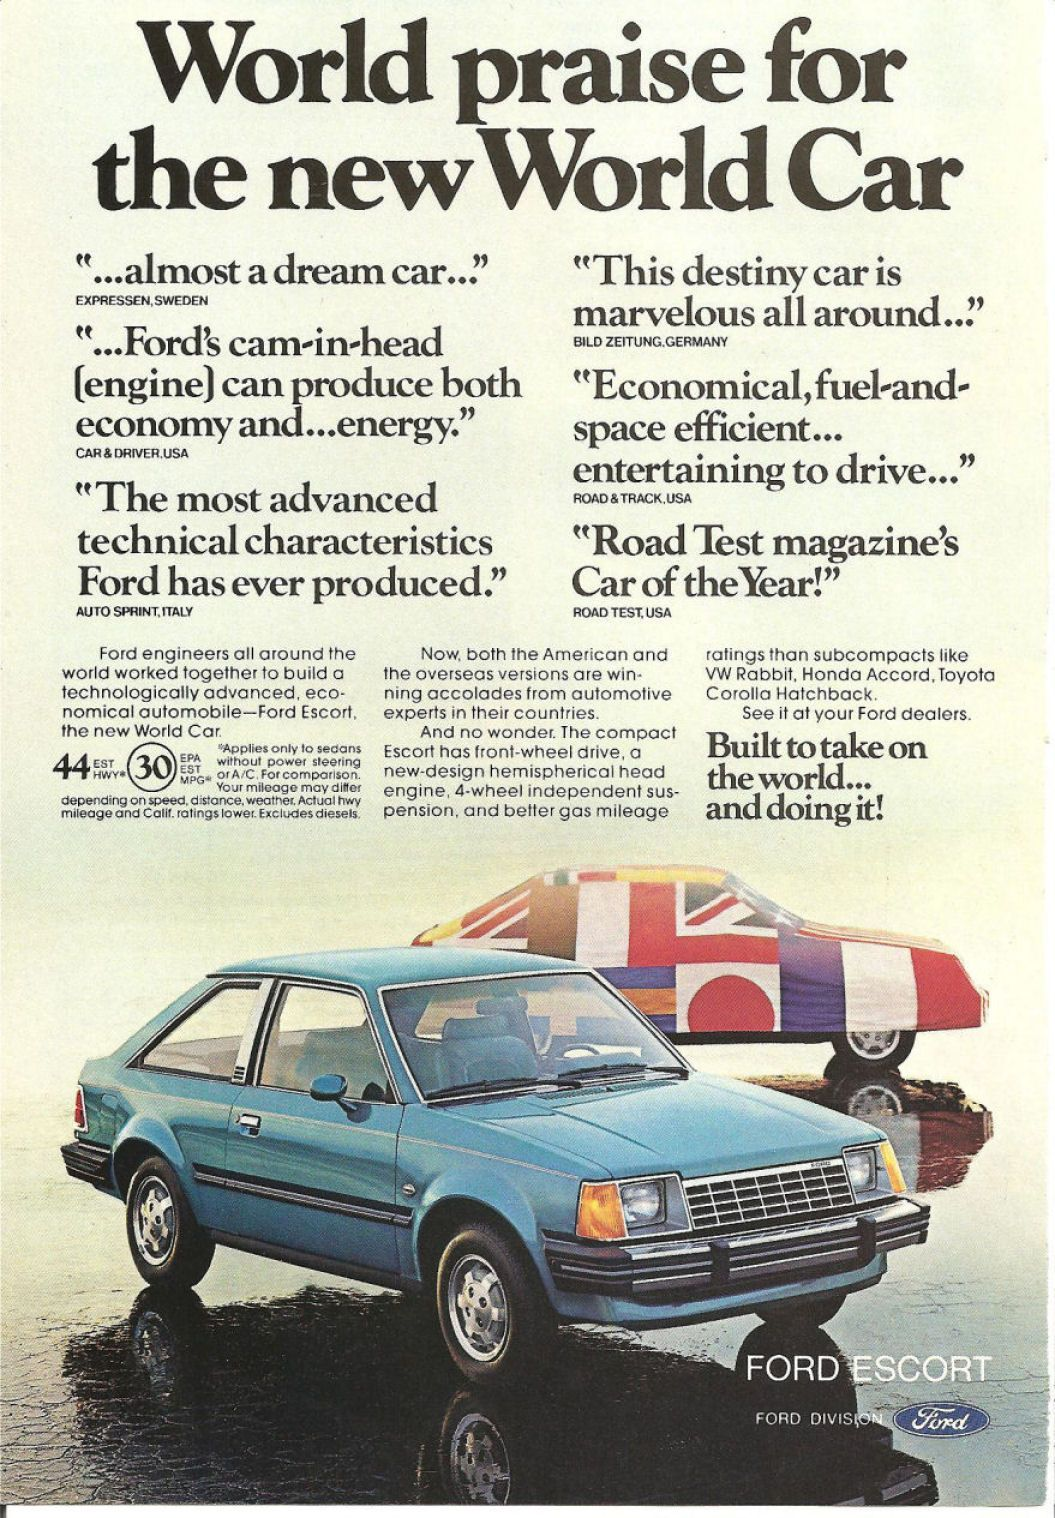 1981 Ford Escort - My first car | Auto Ads of Yester-Year ...